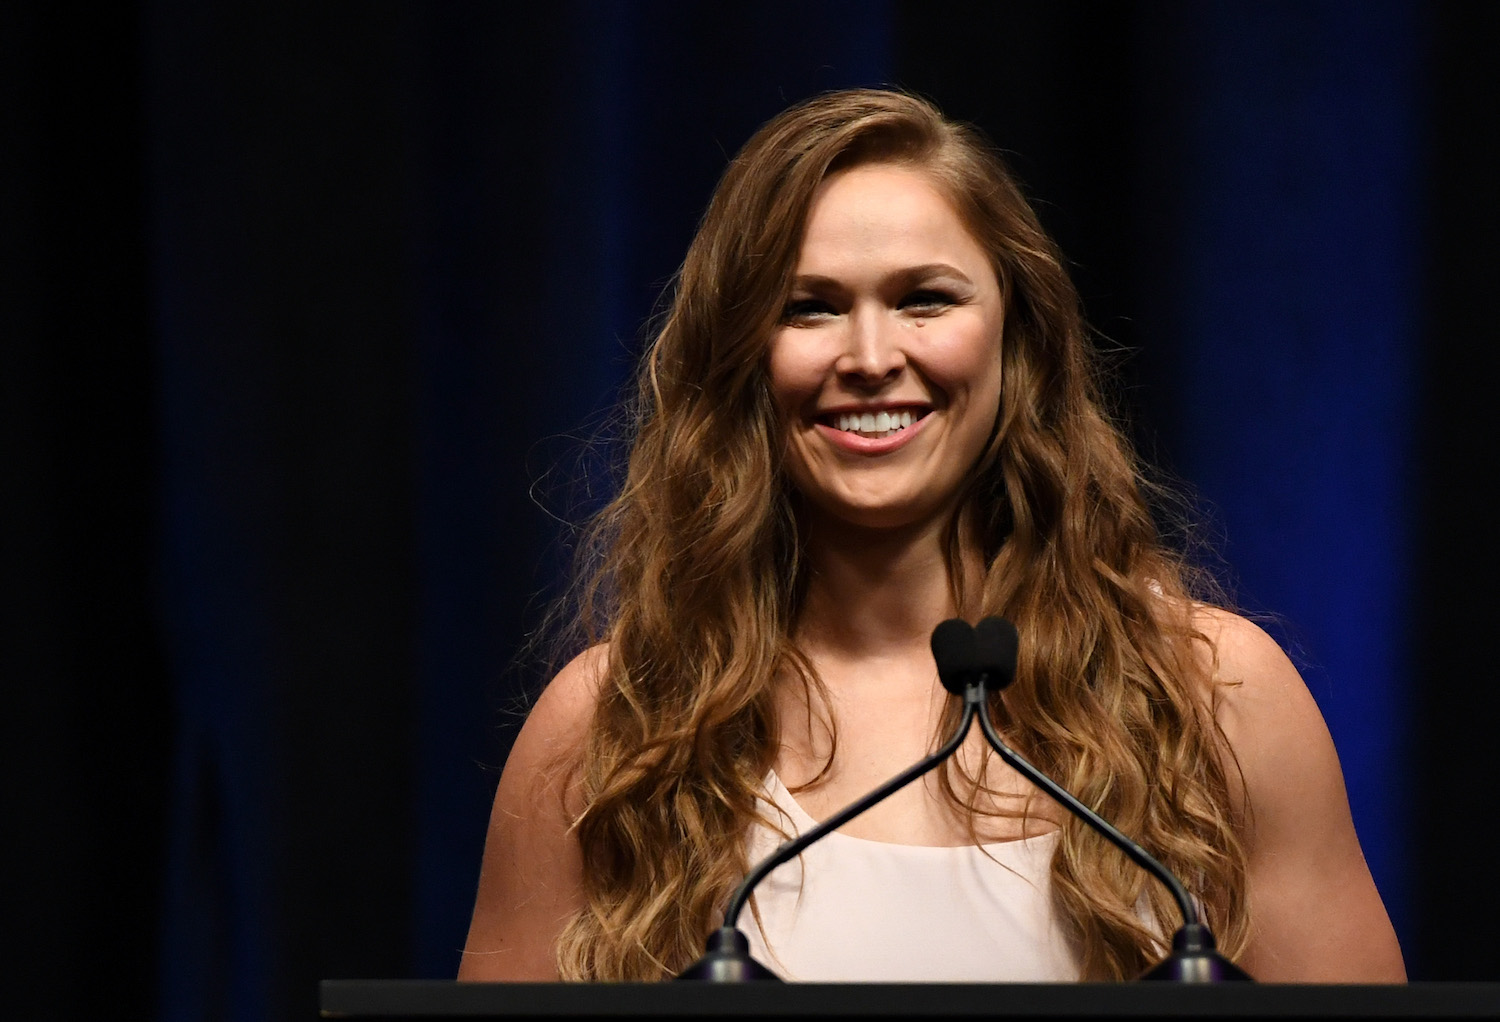 Ronda Rousey Has an Impressive Net Worth and She Keeps Adding to It